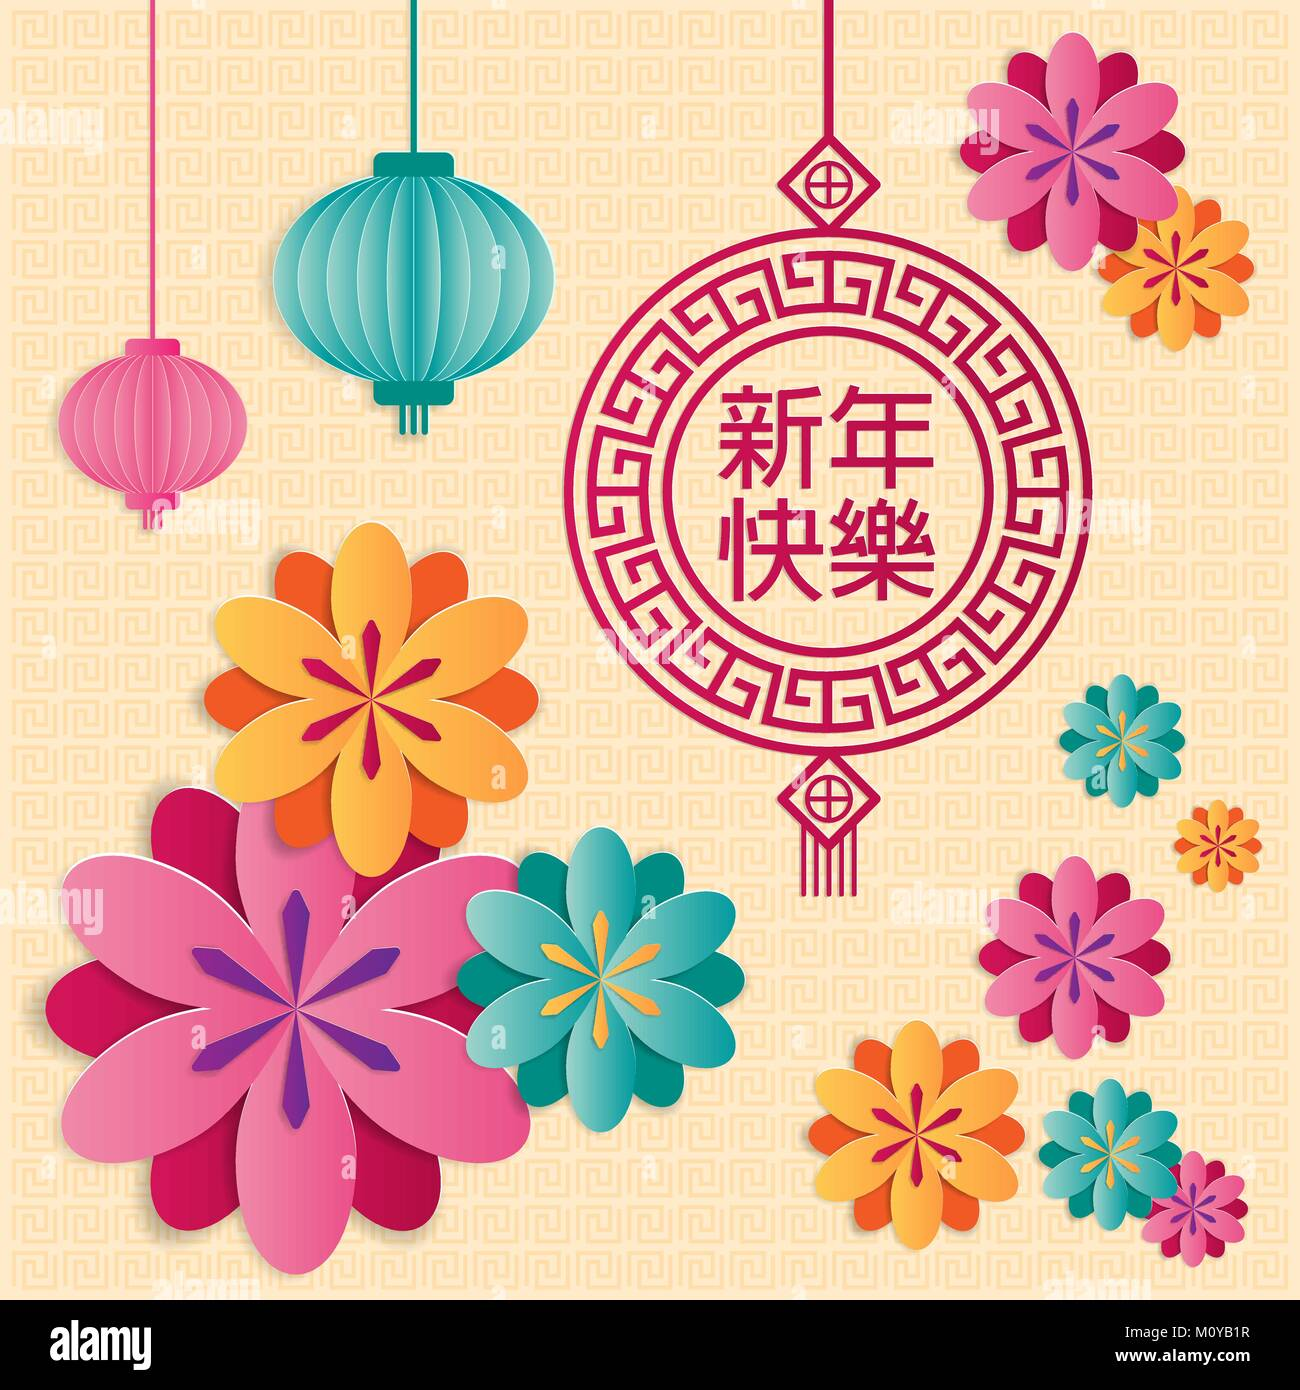 chinese new year greeting card with decorations lantern flower and traditional asian patterns paper art styles vector illustration translation of